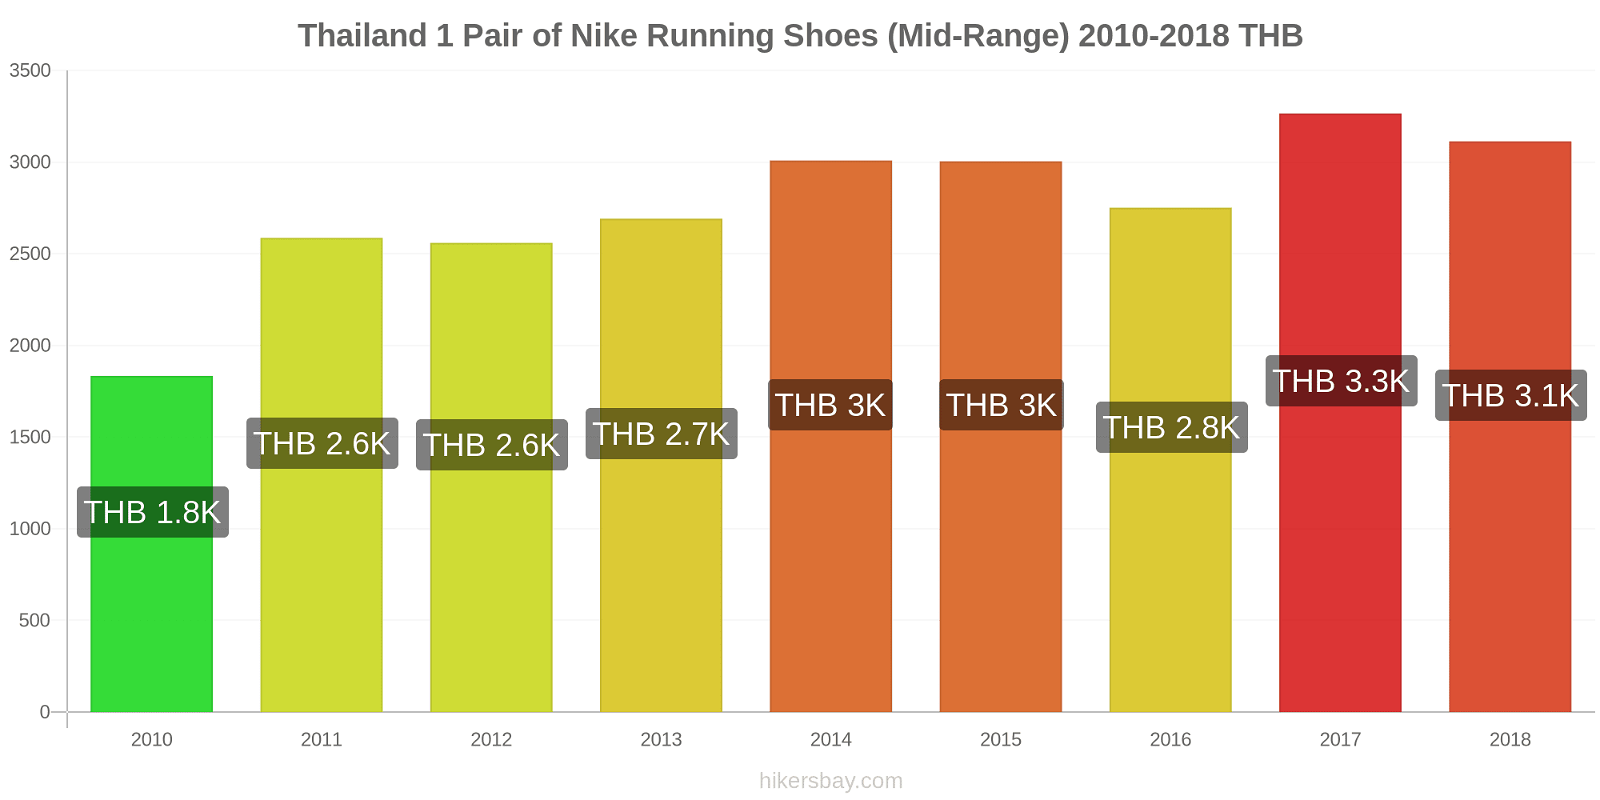 Thailand price changes 1 Pair of Nike Running Shoes (Mid-Range) hikersbay.com